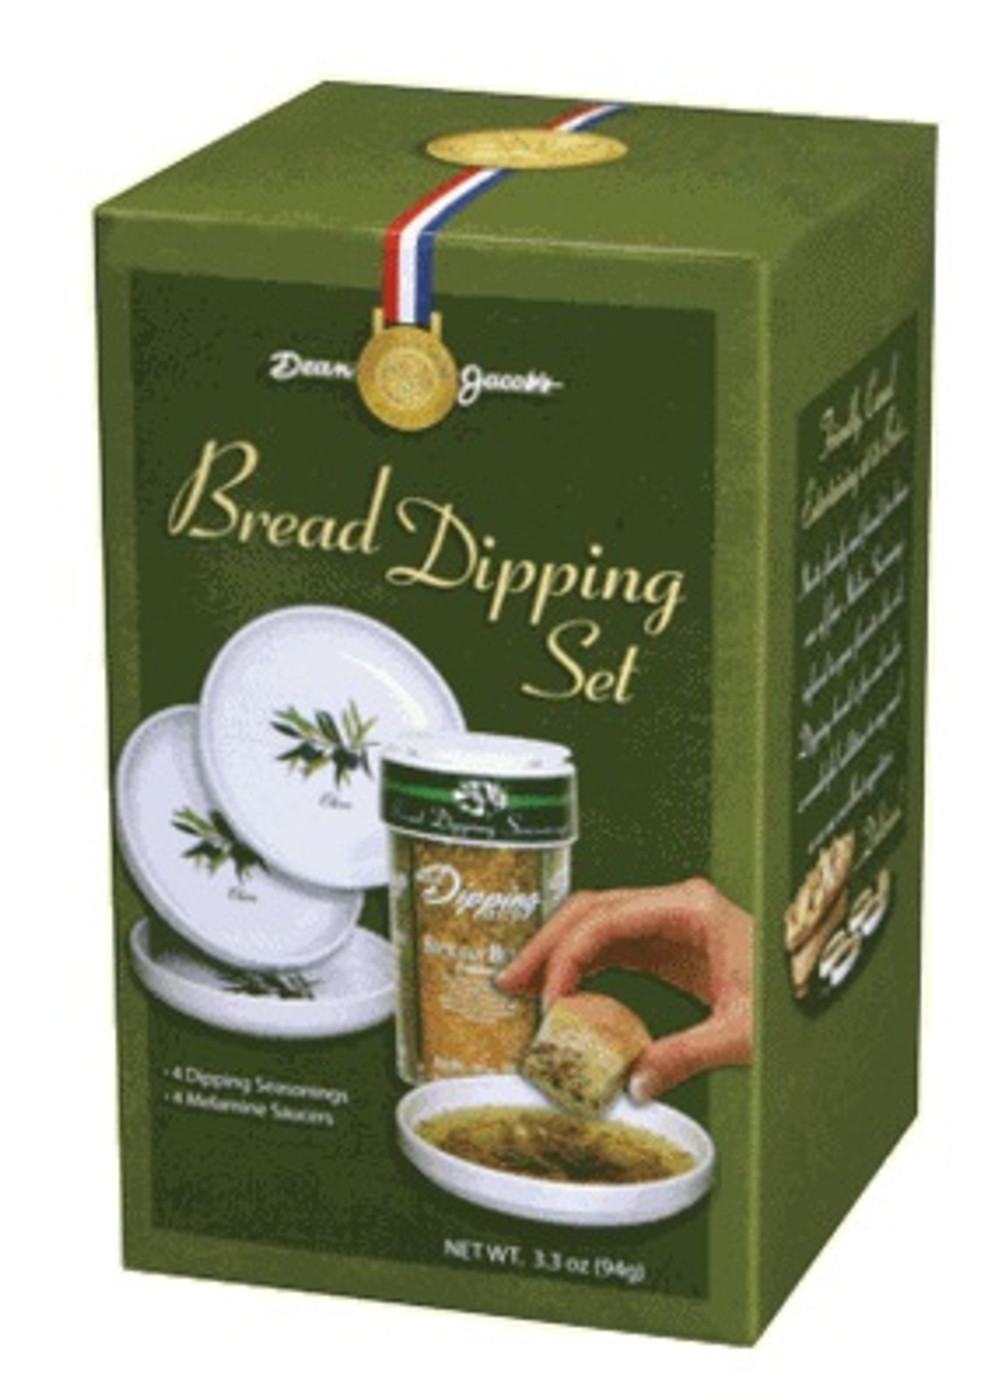 5 piece Melamine Bread Dipping Set 4.0 Oz Large